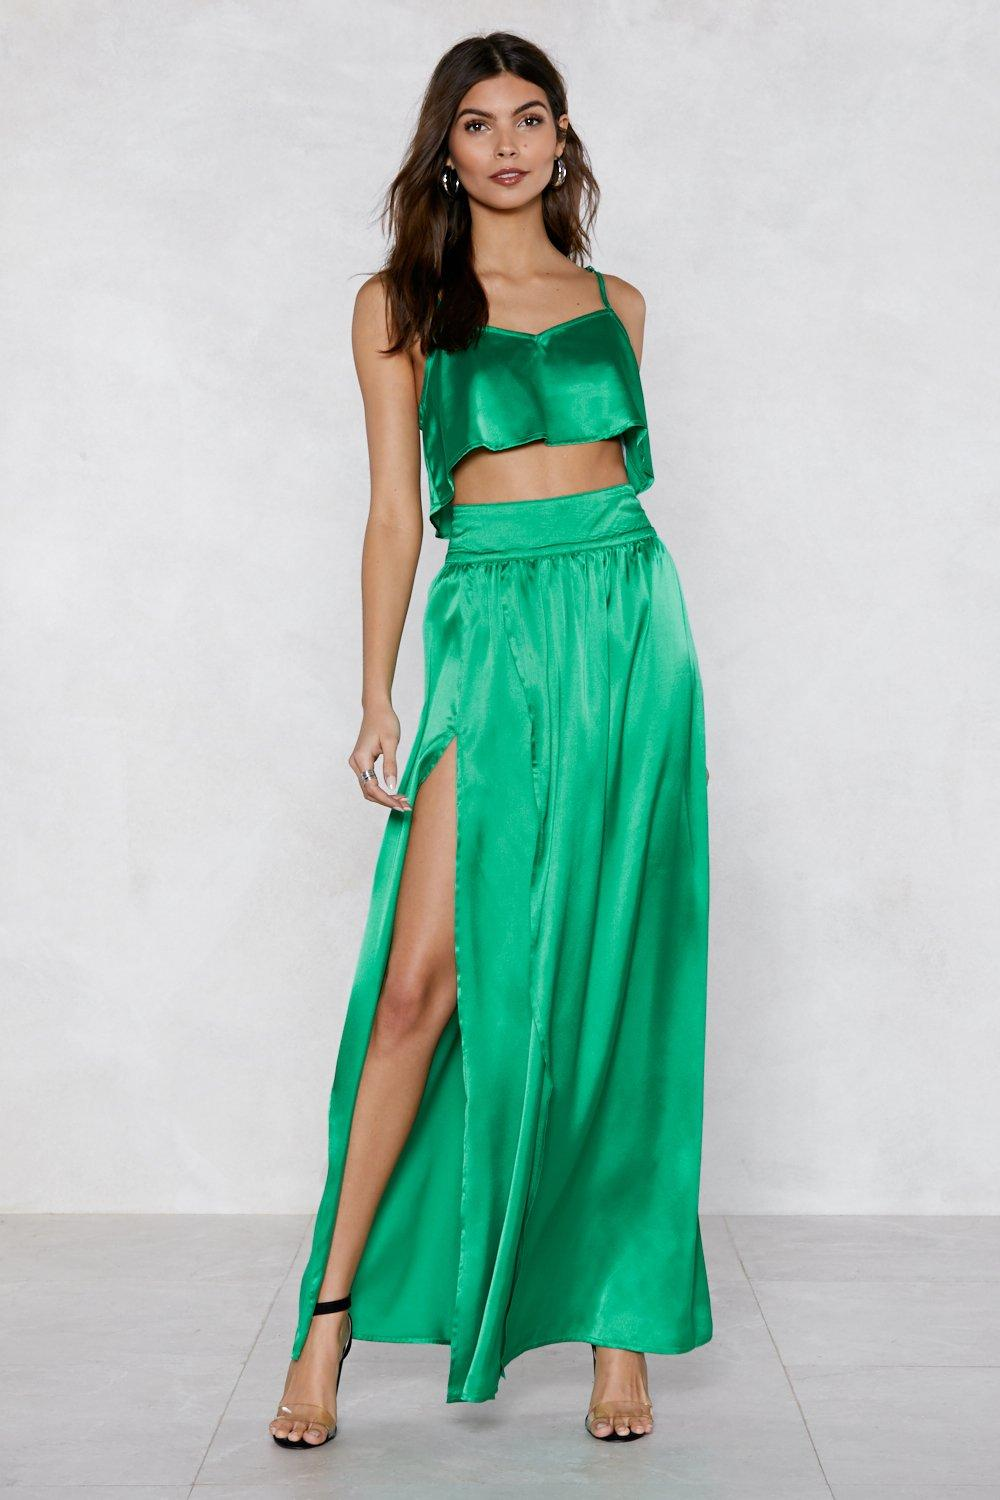 6a38677aaa Give Us Your Two Cents Crop Top and Maxi Skirt | Shop Clothes at ...